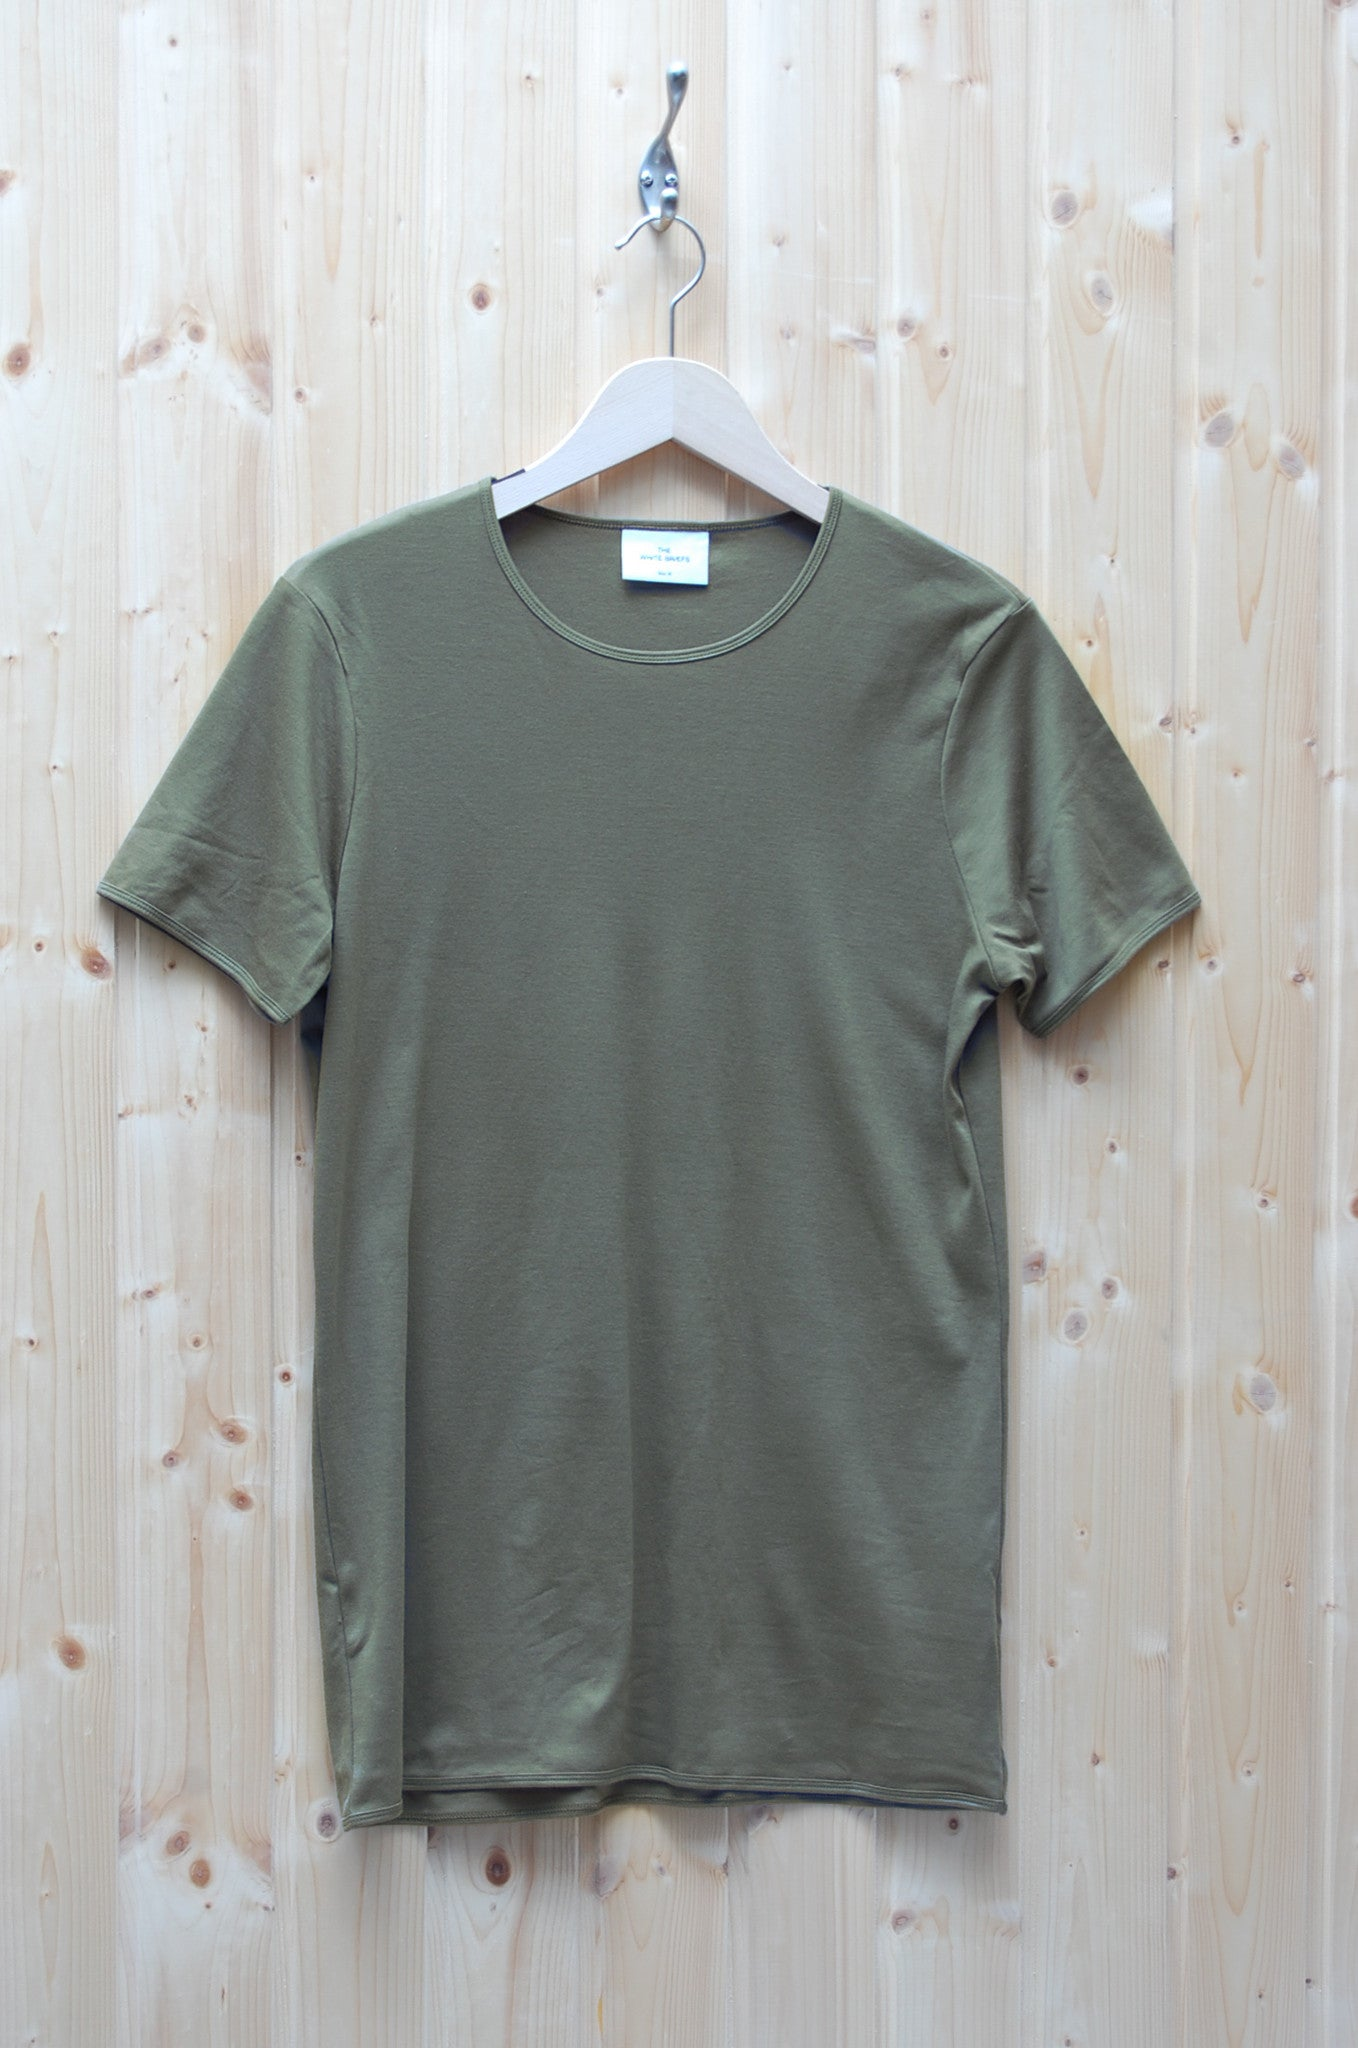 The White Briefs Earth dark olive